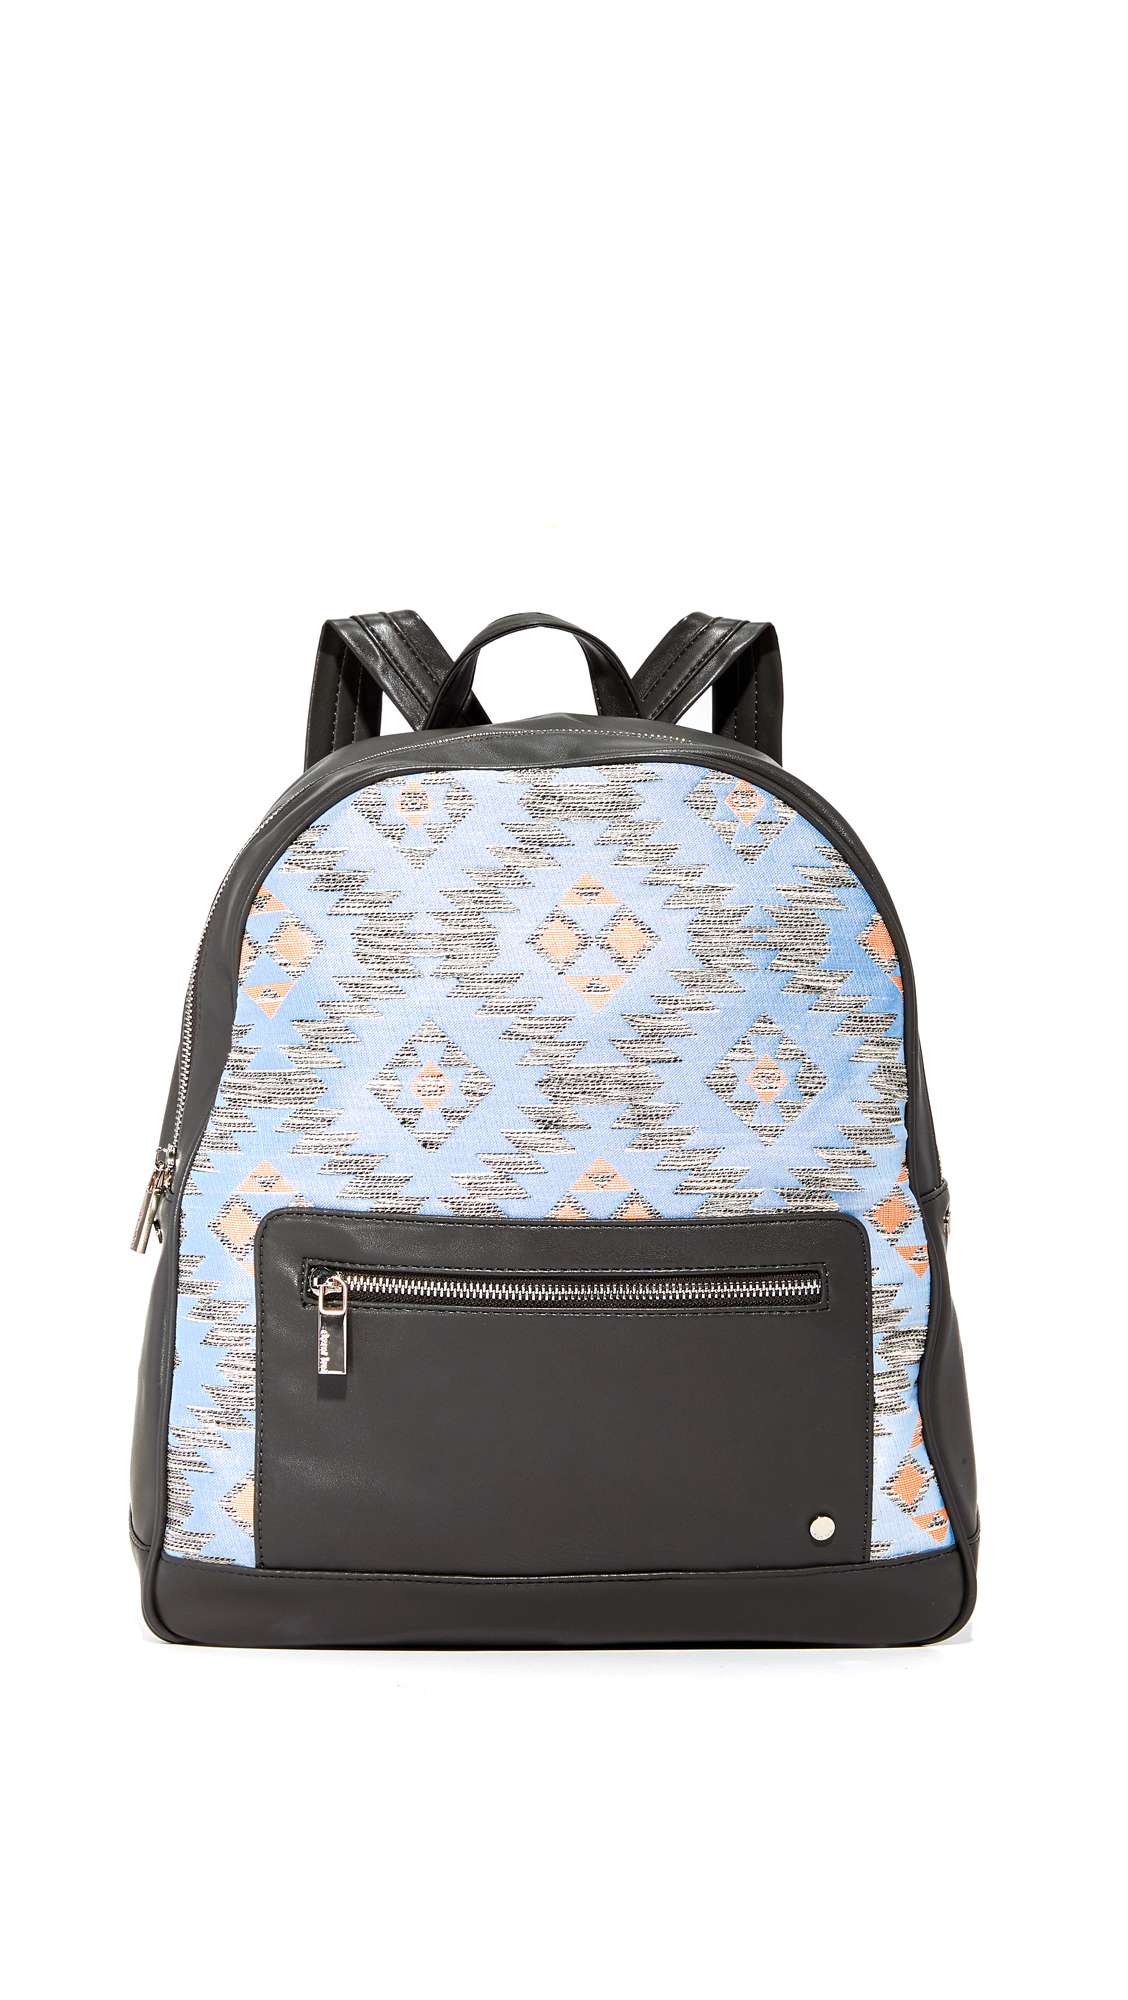 Metallic threads add a subtle glamour to this patterned Deux Lux backpack. Faux leather zip front pocket with a polished logo stud. Wraparound top zip opens to a lined, 3 pocket interior. Locker loop and adjustable shoulder